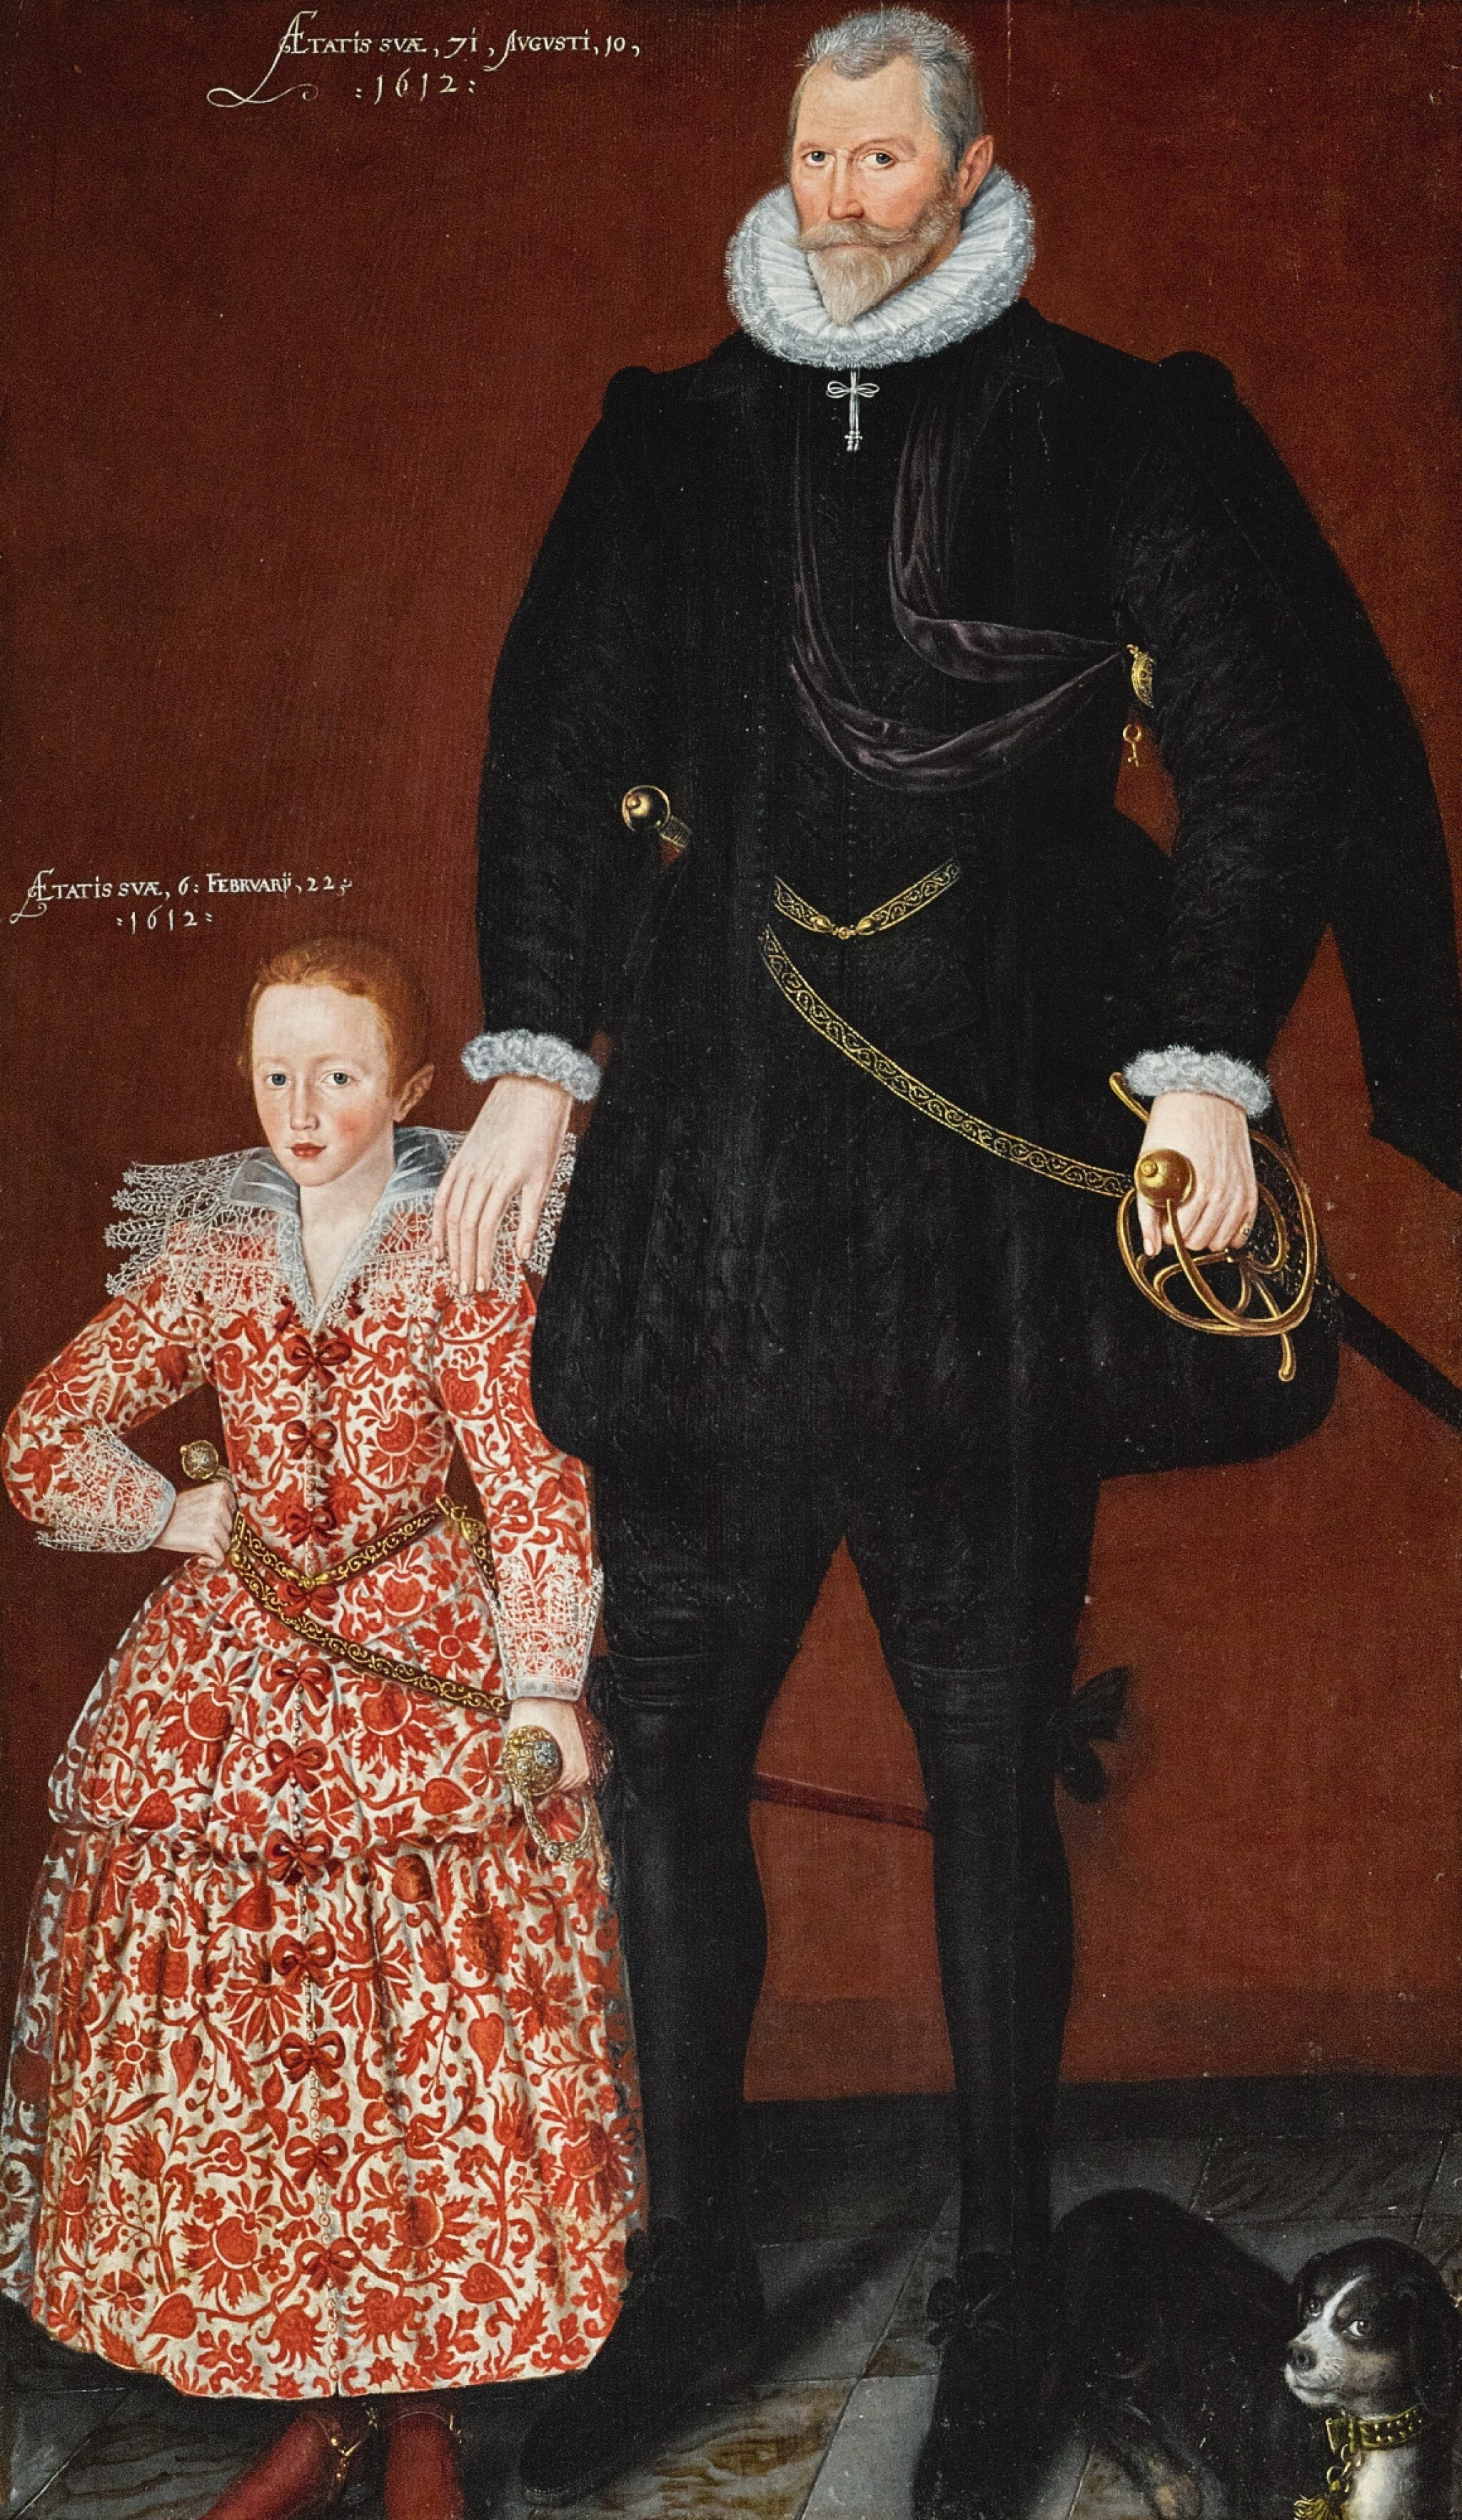 View full screen - View 1 of Lot 128. CIRCLE OF ROBERT PEAKE | Portrait of Sir Edward Pytts of Kyre Wyard and Sheriff of Worcestershire and his grandson, Edward Pytts, both full-length, the former in a black doublet and hose with a dog at his feet, the latter in a richly embroidered red and white dress, holding a sword.